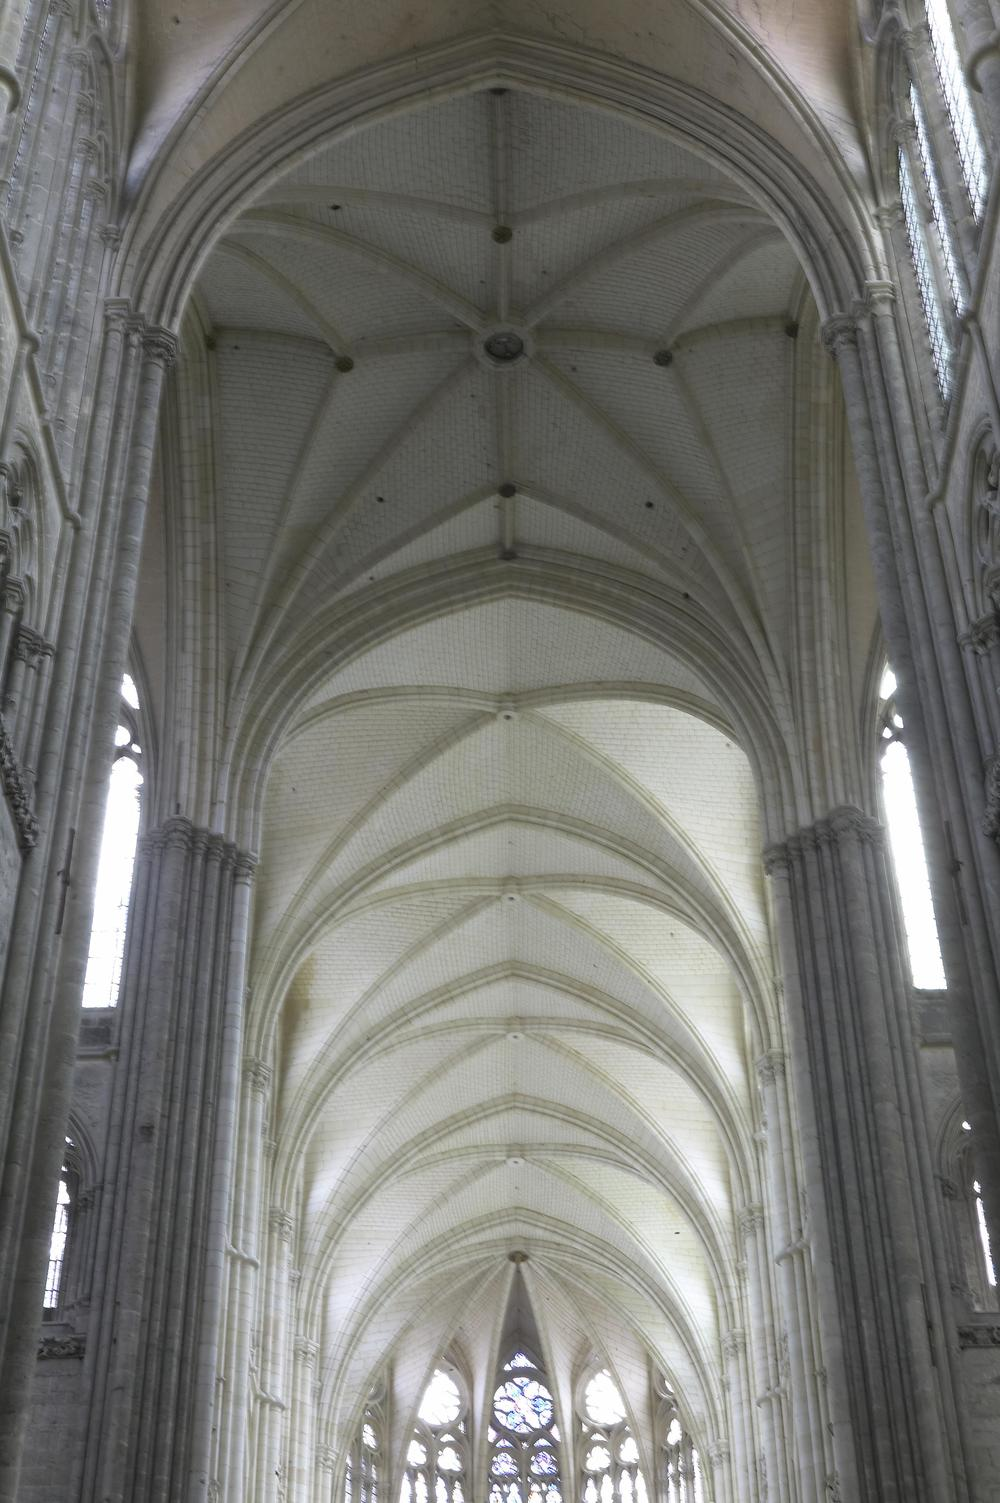 Vaulting in the Apse